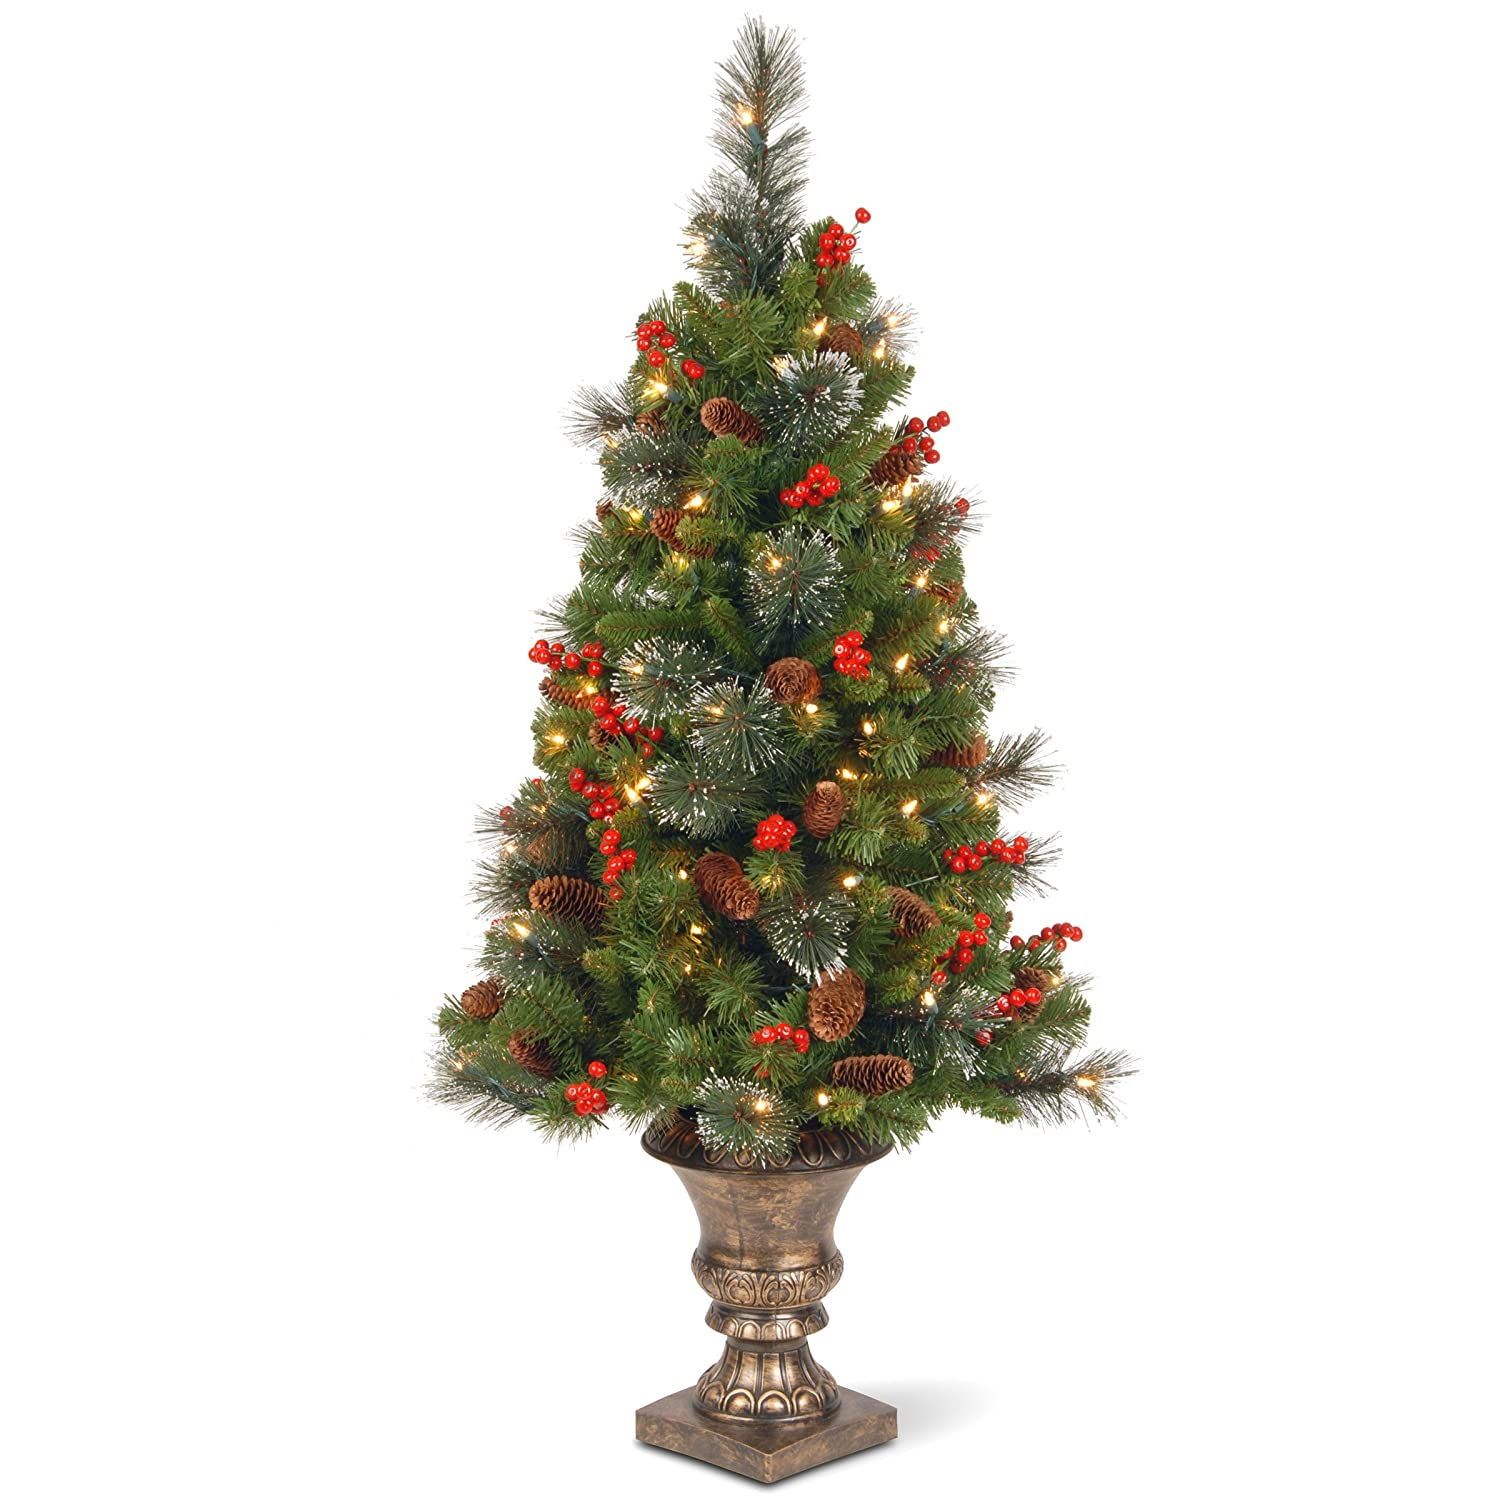 National Tree 4 Foot Crestwood Spruce Entrance Tree with Cones, Glitter, Red Berries, Silver Bristle and 100 Clear Lights in Decorative Urn (CW7-306-40)